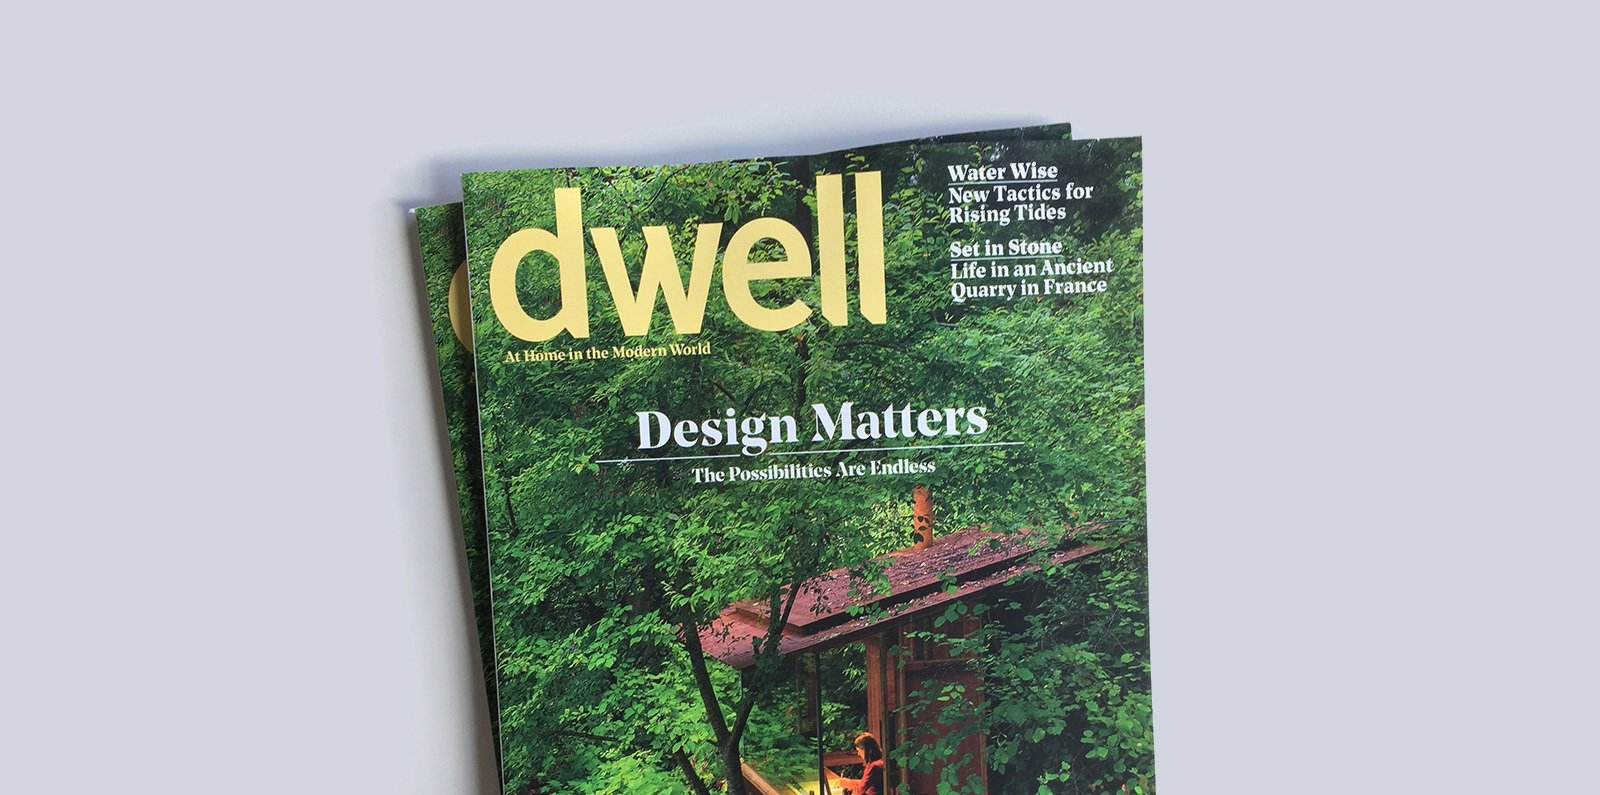 Photo 1 of 2 in Editor's Letter: Design Matters